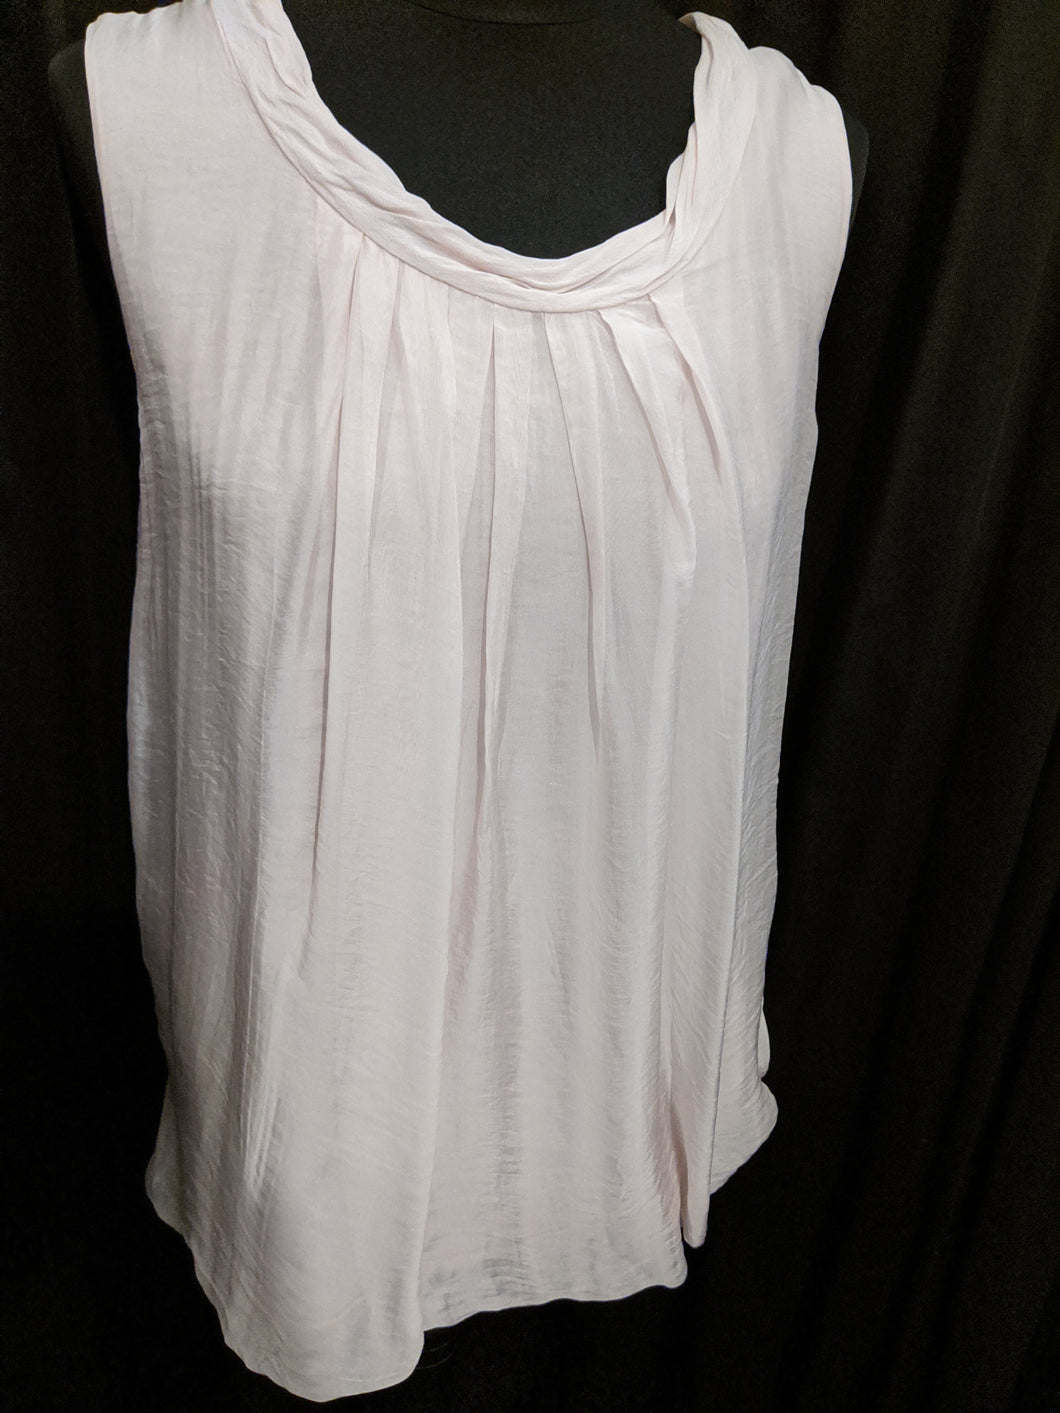 Sleeveless silk top (camisole)